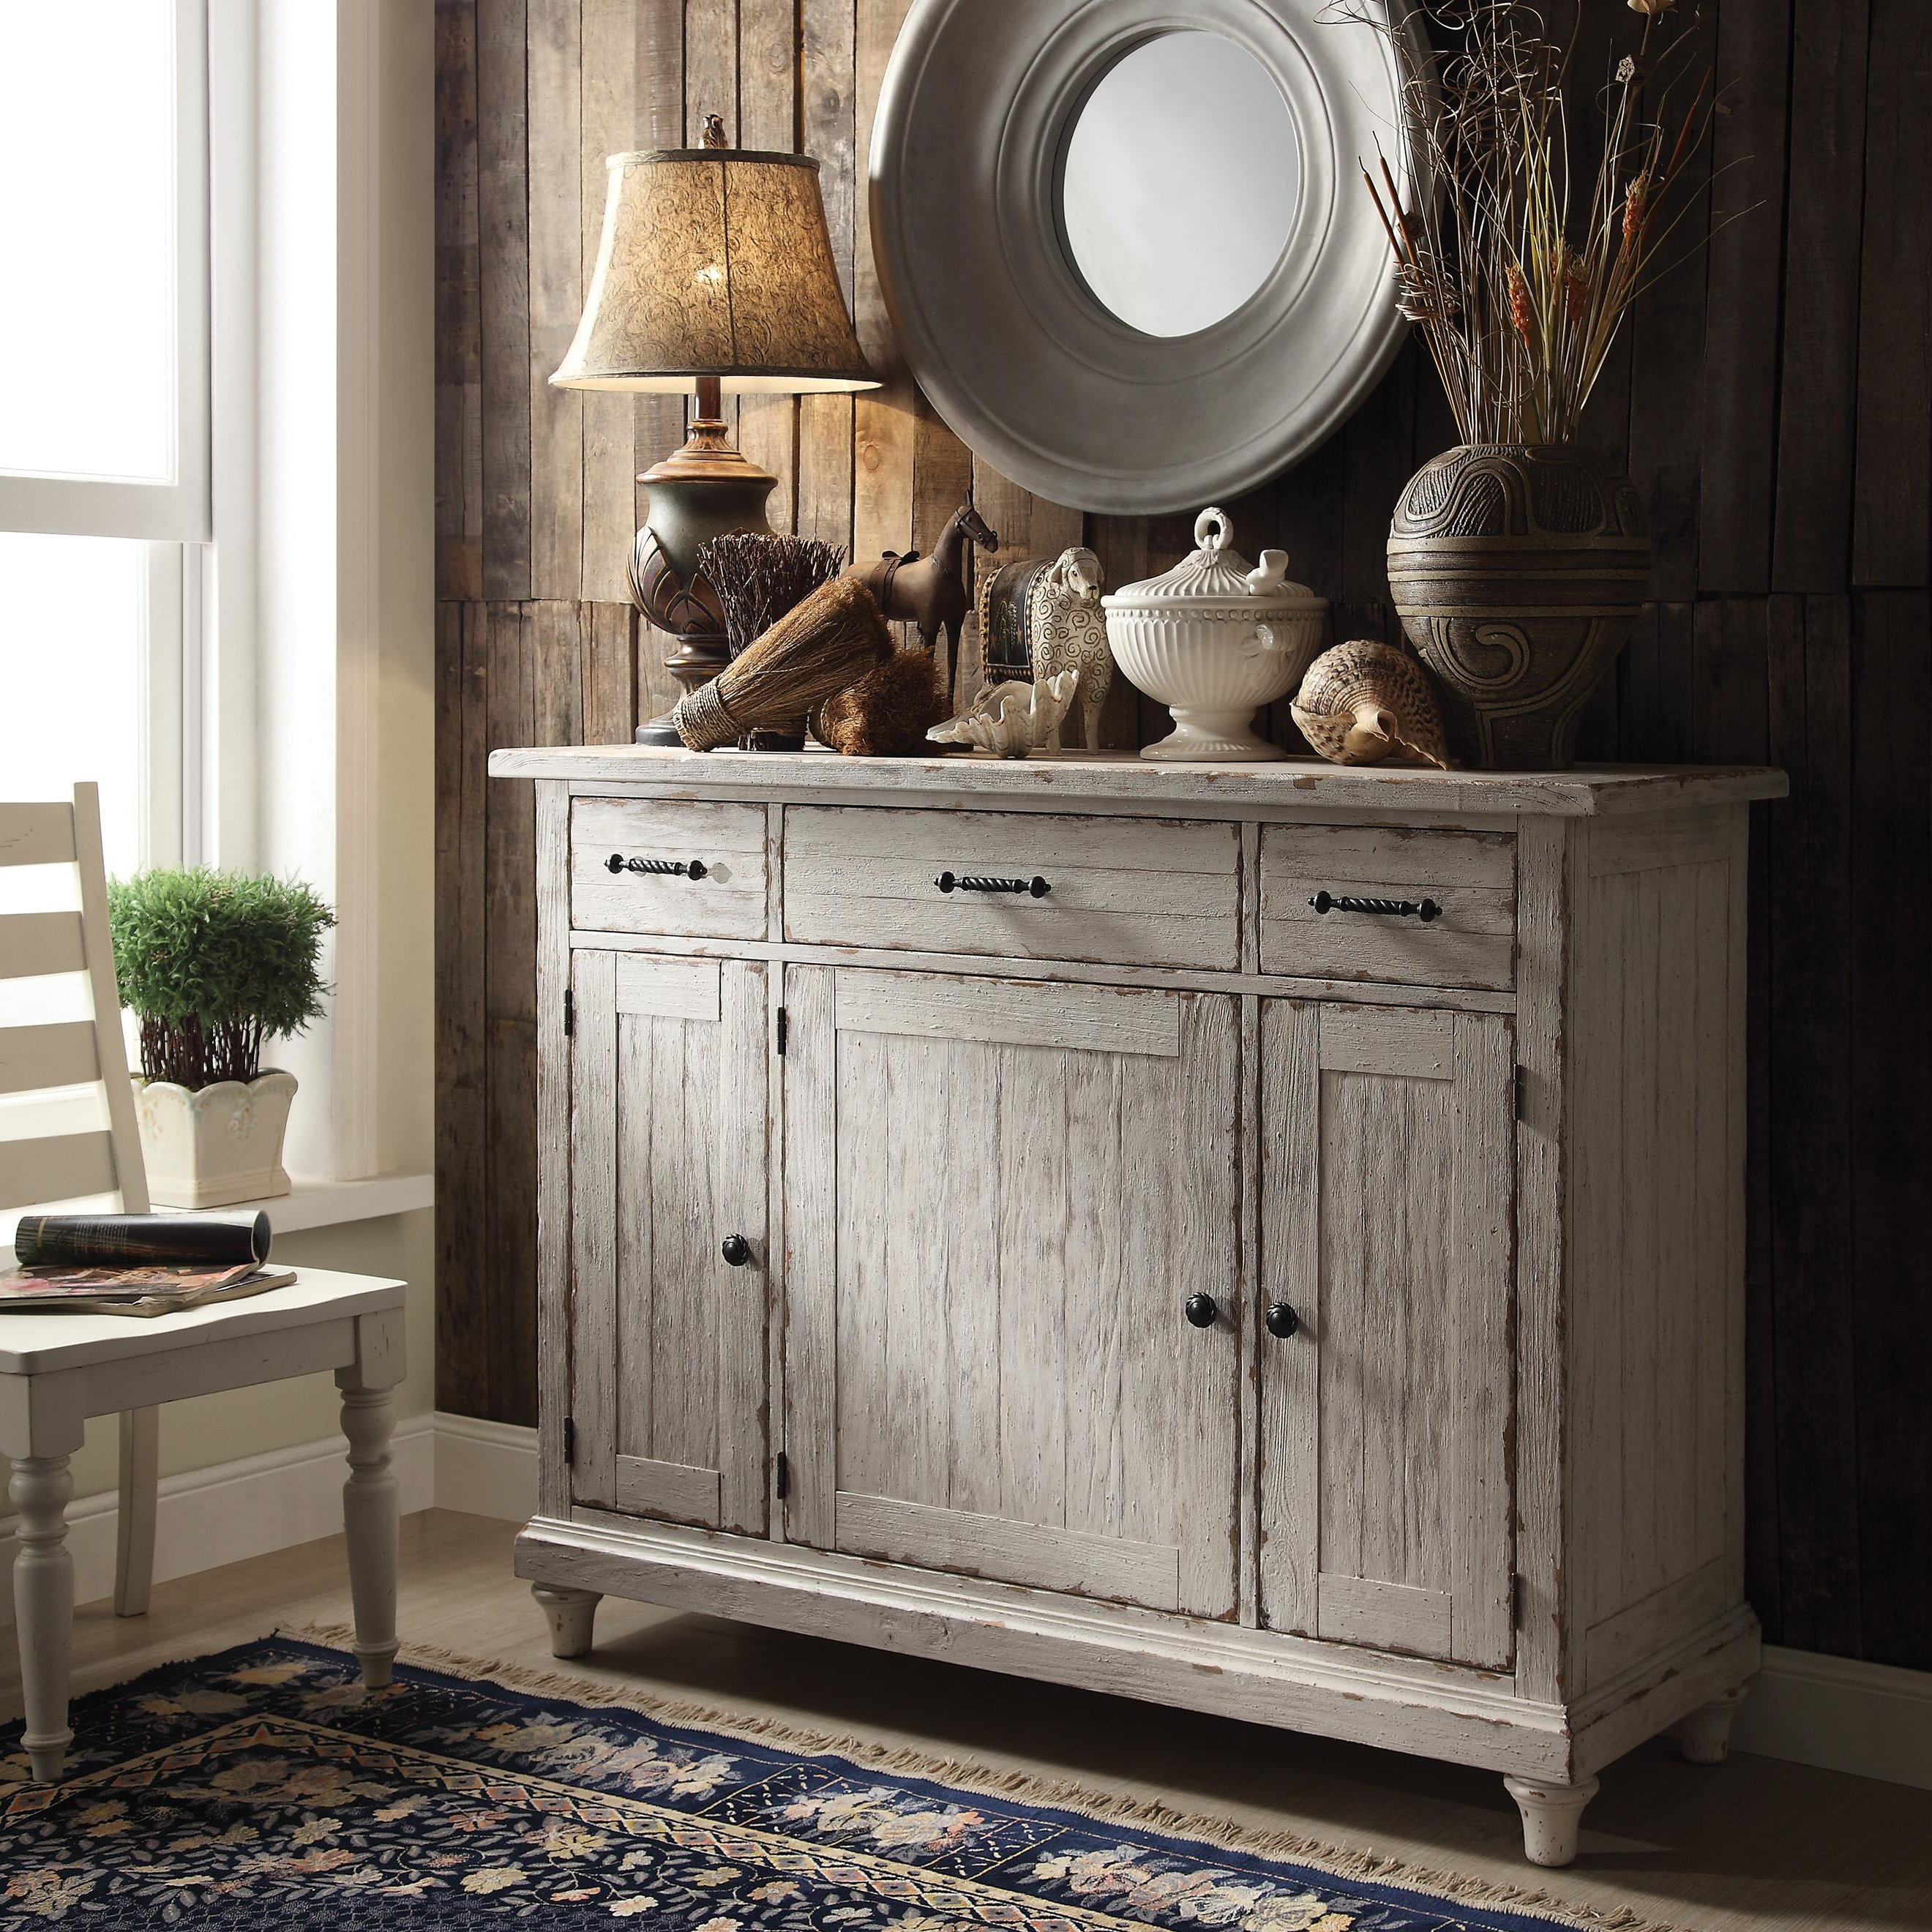 Payton Serving Sideboards Regarding Newest Farmhouse & Rustic Sideboards & Buffets (View 12 of 20)